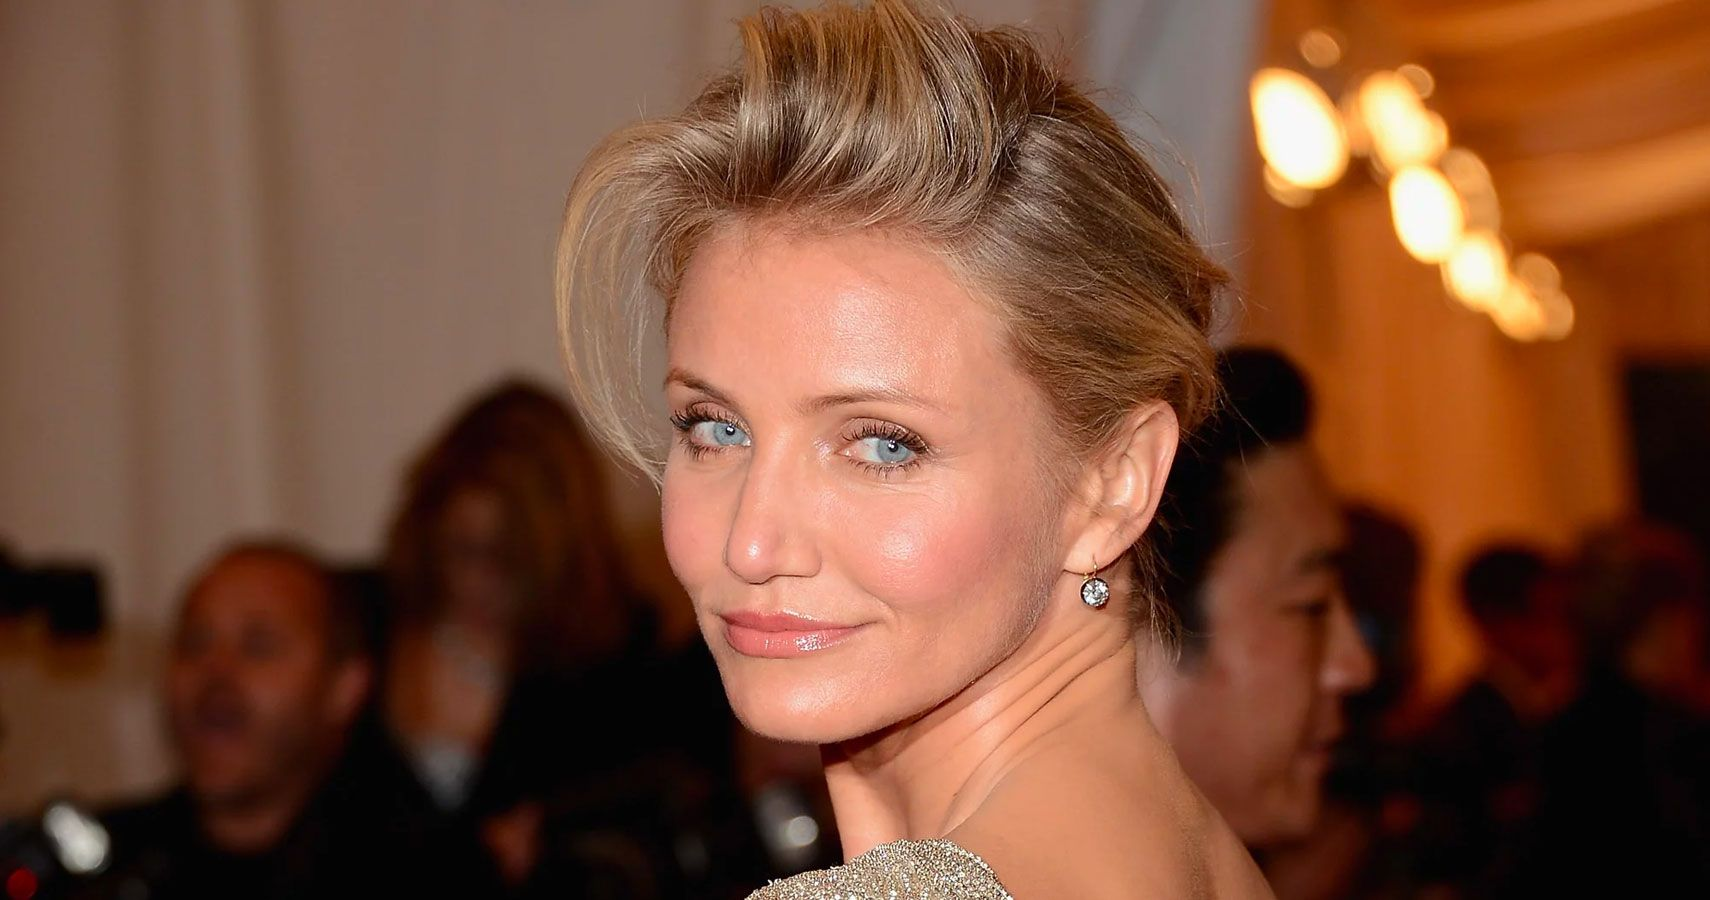 How Much Is Cameron Diaz's Net Worth Now? | TheThingsCameron Diaz Net Worth